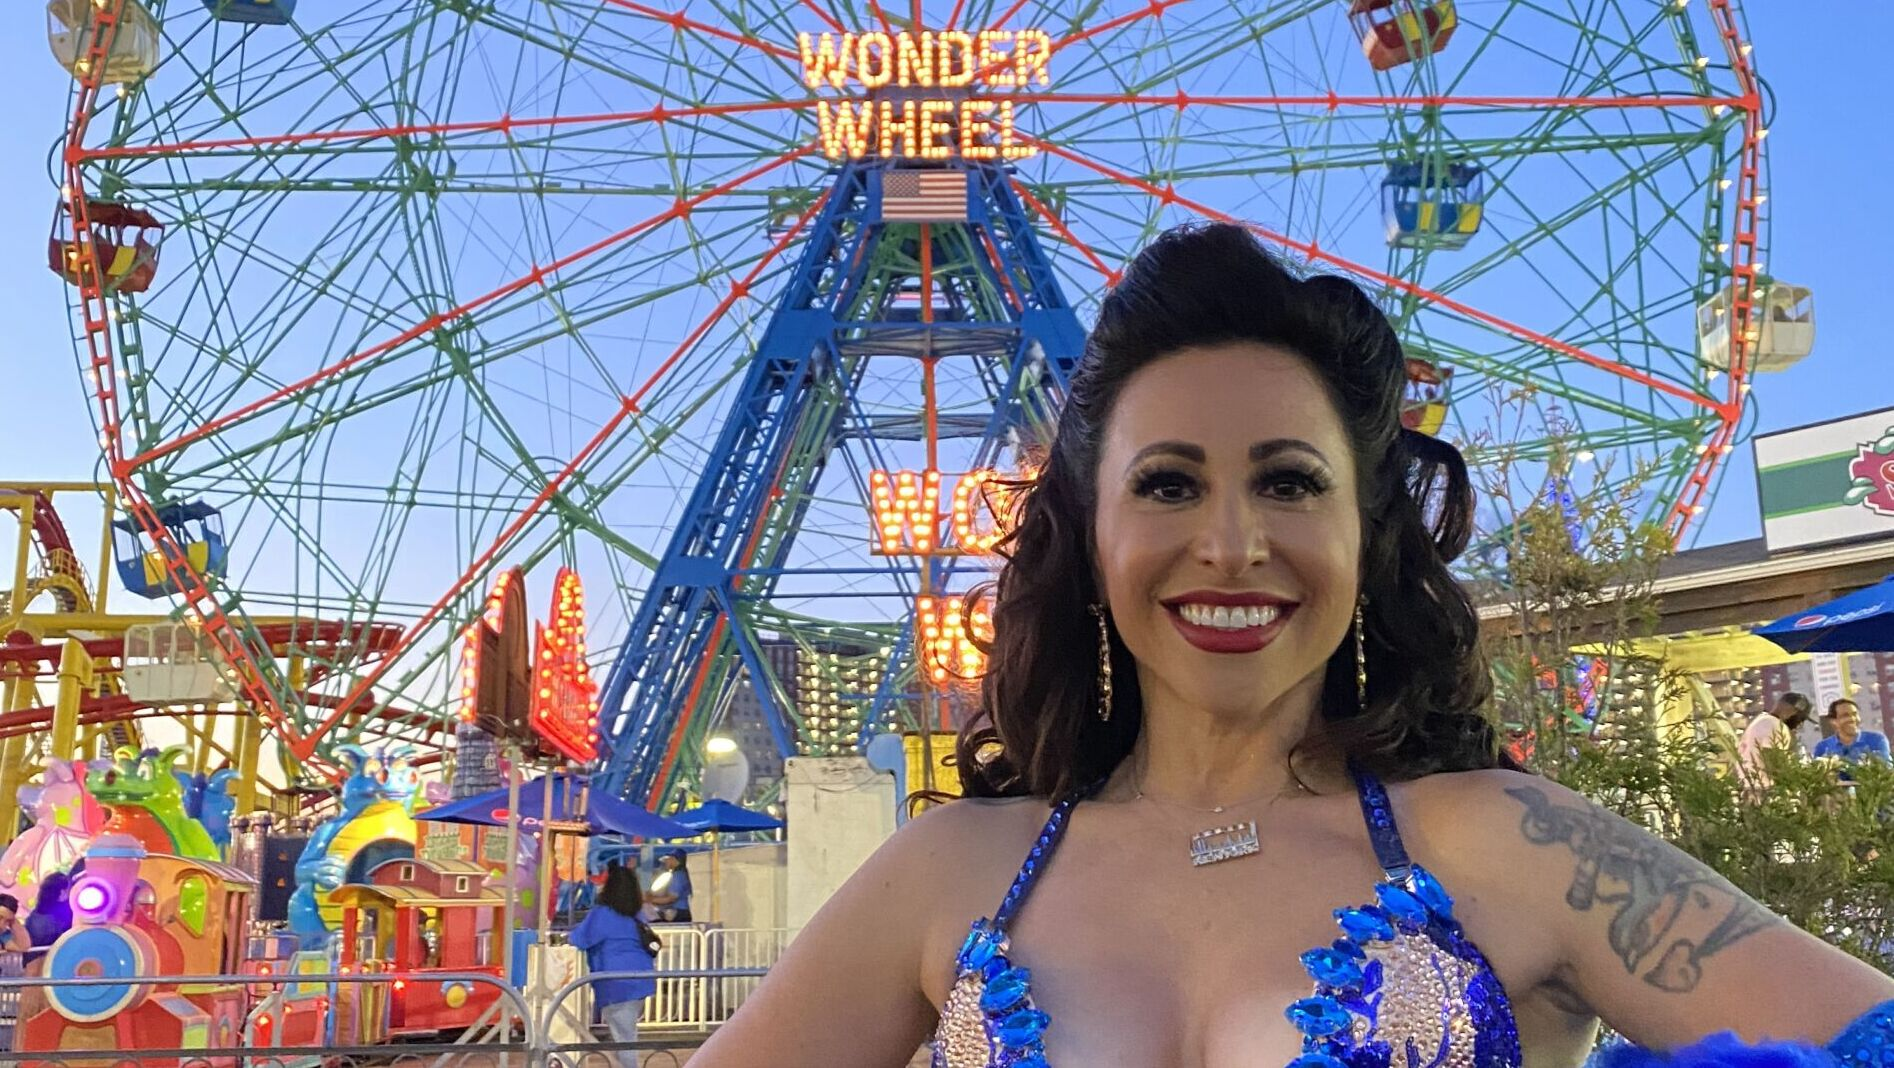 A woman with dress showing lots of cleavage, long blue gloves and feathered accessory stands in front of a ferris wheel